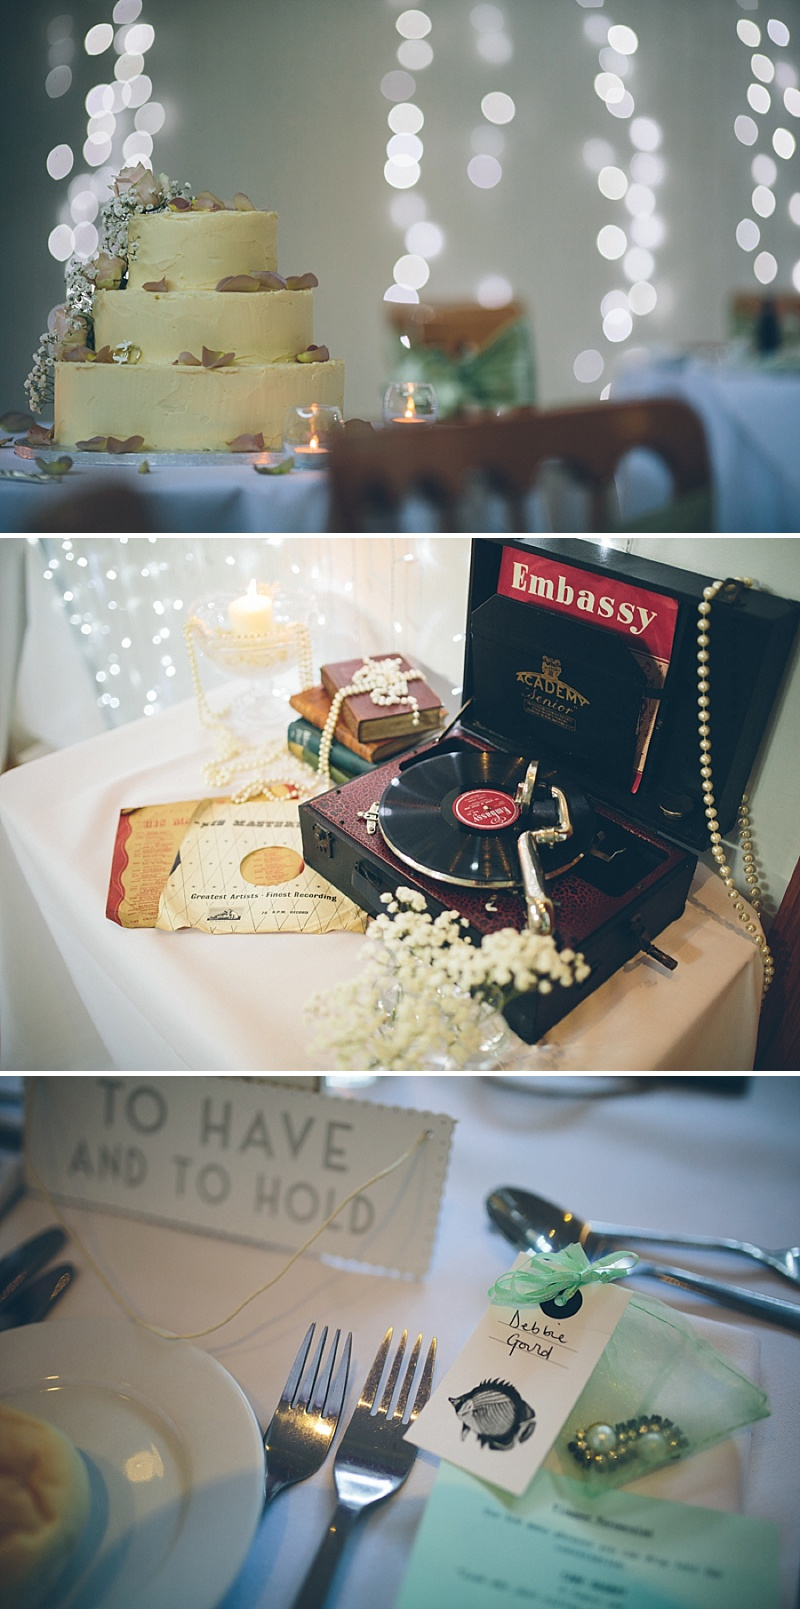 Art Deco and 1920s Inspired Wedding At The Matara Centre Gloucestershire With Bride In Joy By Jenny Packham and Bridesmaids in No 1 by Jenny Packham At Debenhams With Vintage Details and Speakeasy Themed Cocktails 10